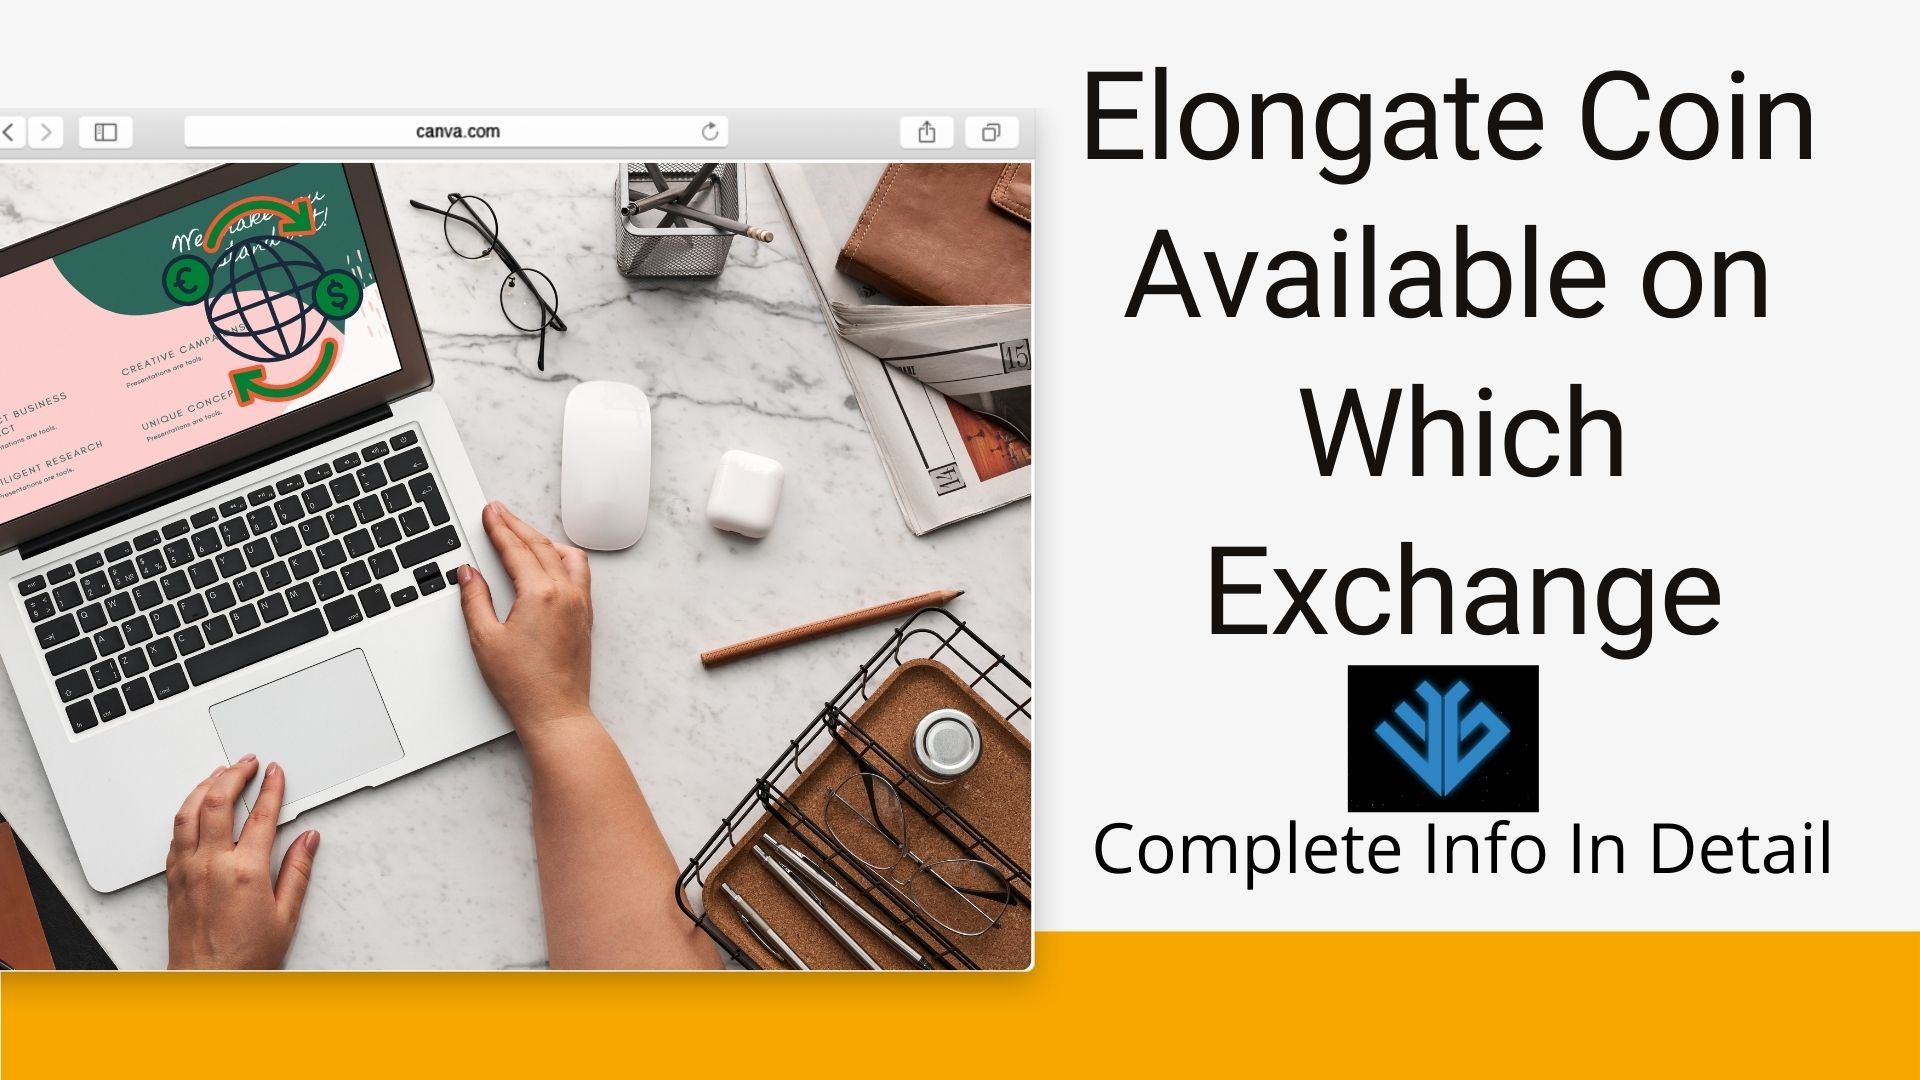 Elongate Coin Available on Which Exchange